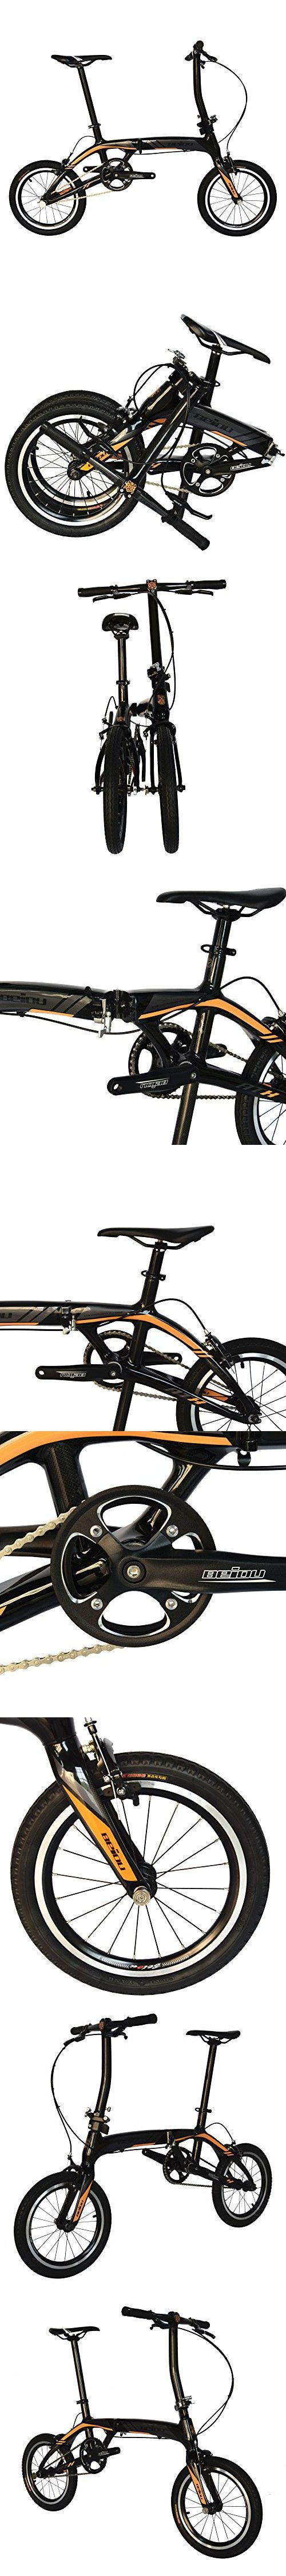 BEIOU Sports Ultra Full Carbon Speed Folding Bicycle Superlight Urban Bike 16.8lb Downtown bikes Fold down to small package for sedans, hatchbacks, minivans MPV and SUV 14Inch/16Inch CB026 (16-Inch)